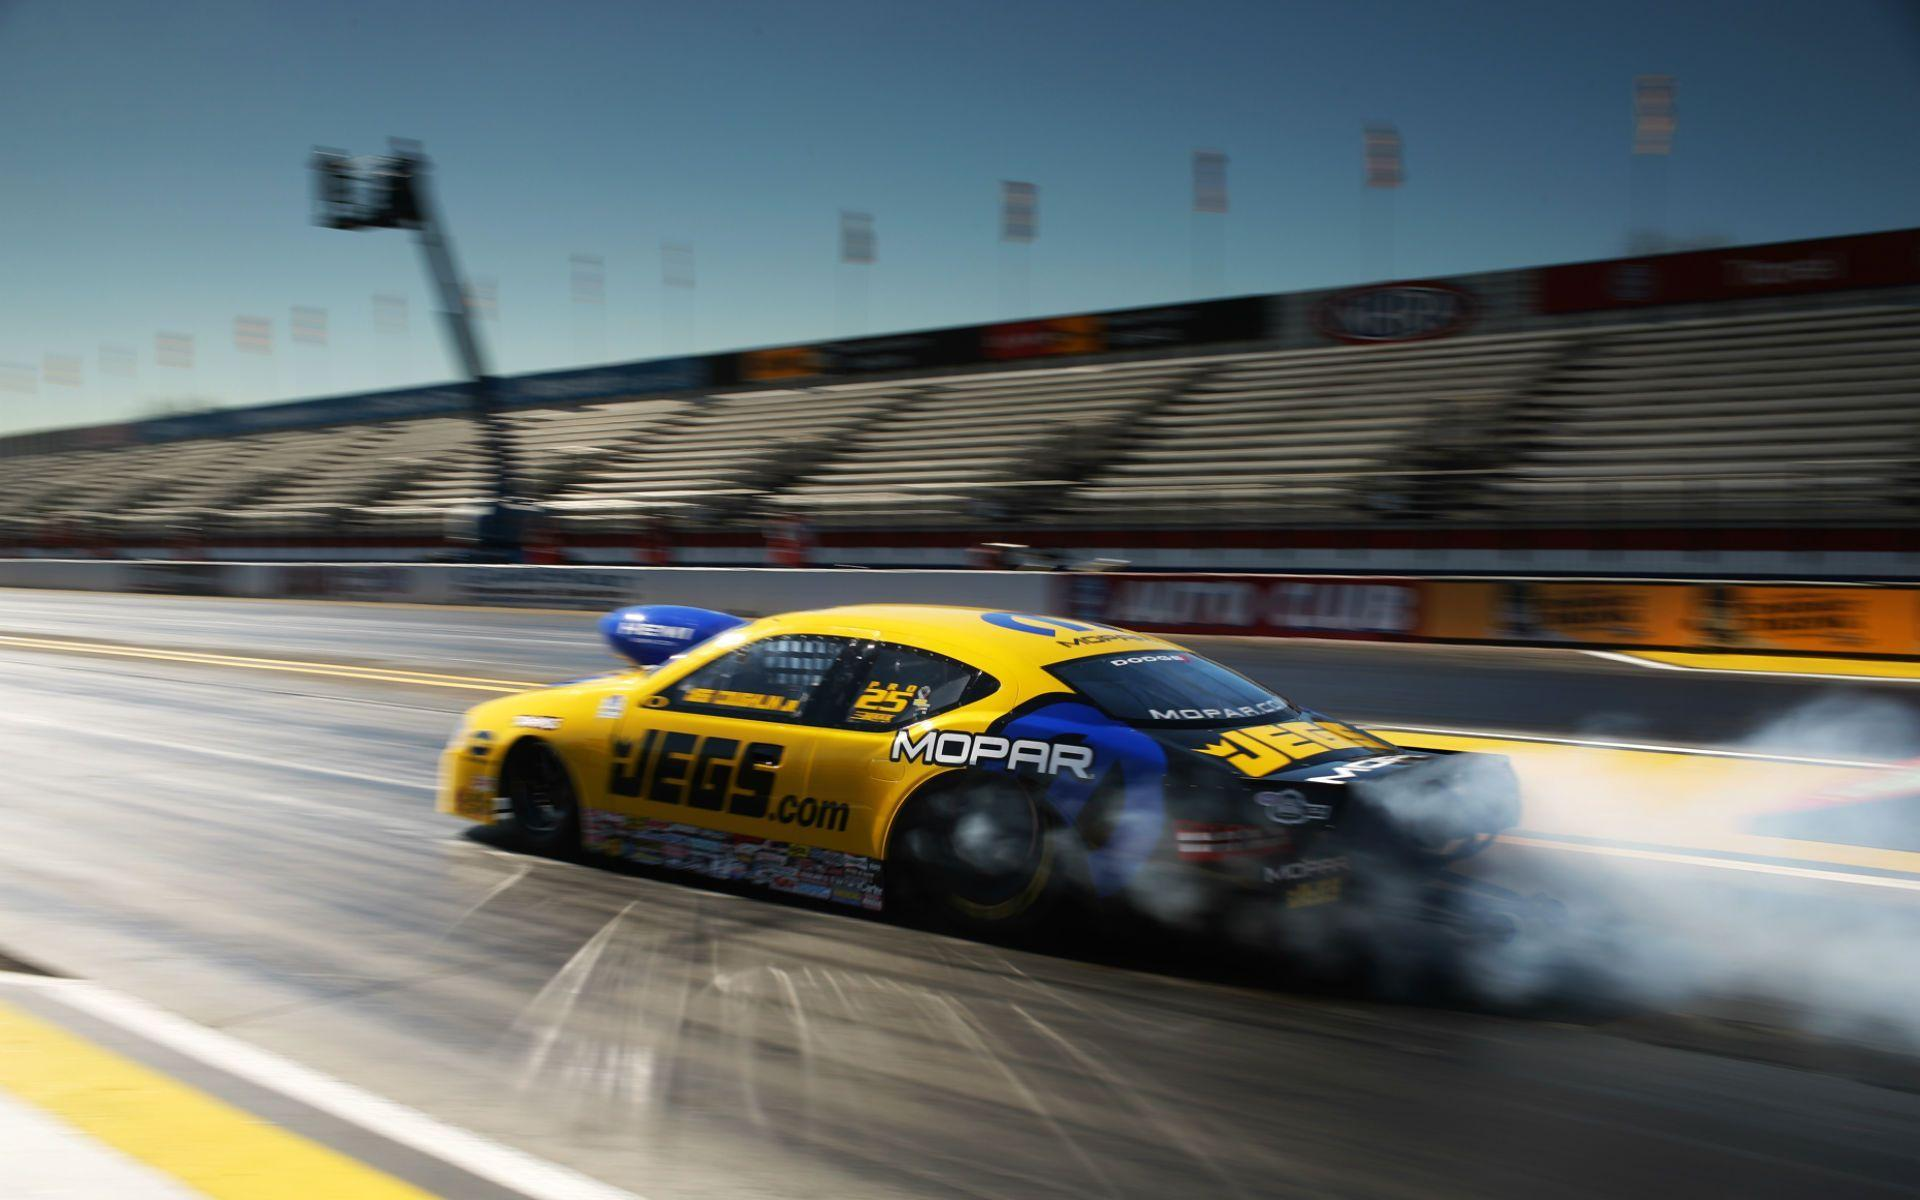 Car Drag Racing Wallpaper Image #8284 Wallpaper | Wallpaper Screen ...